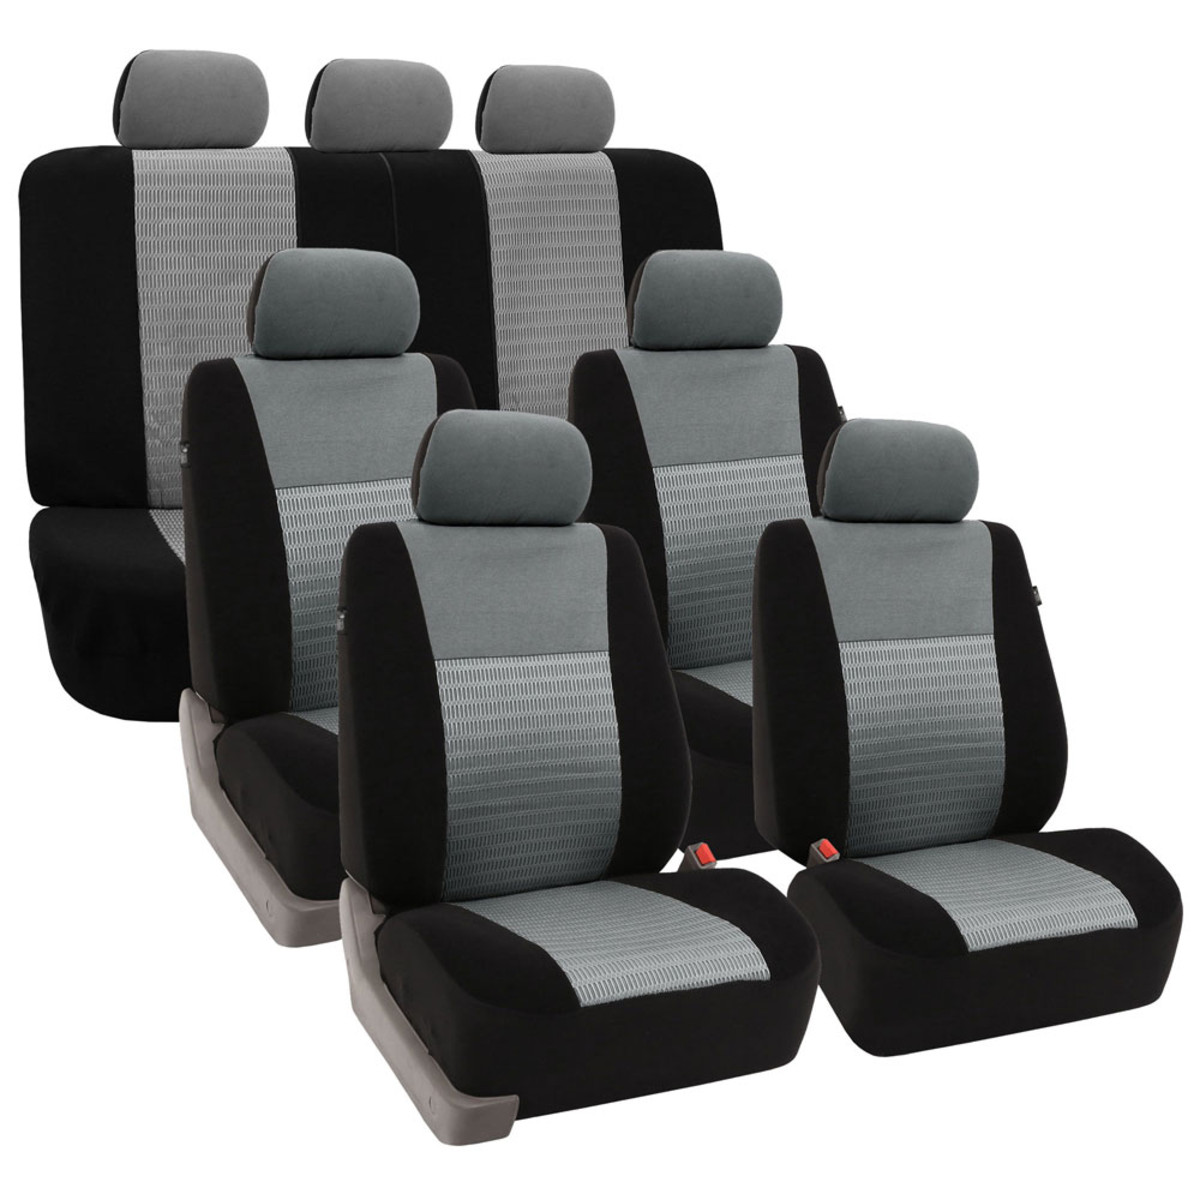 FB060217GRAY seat cover